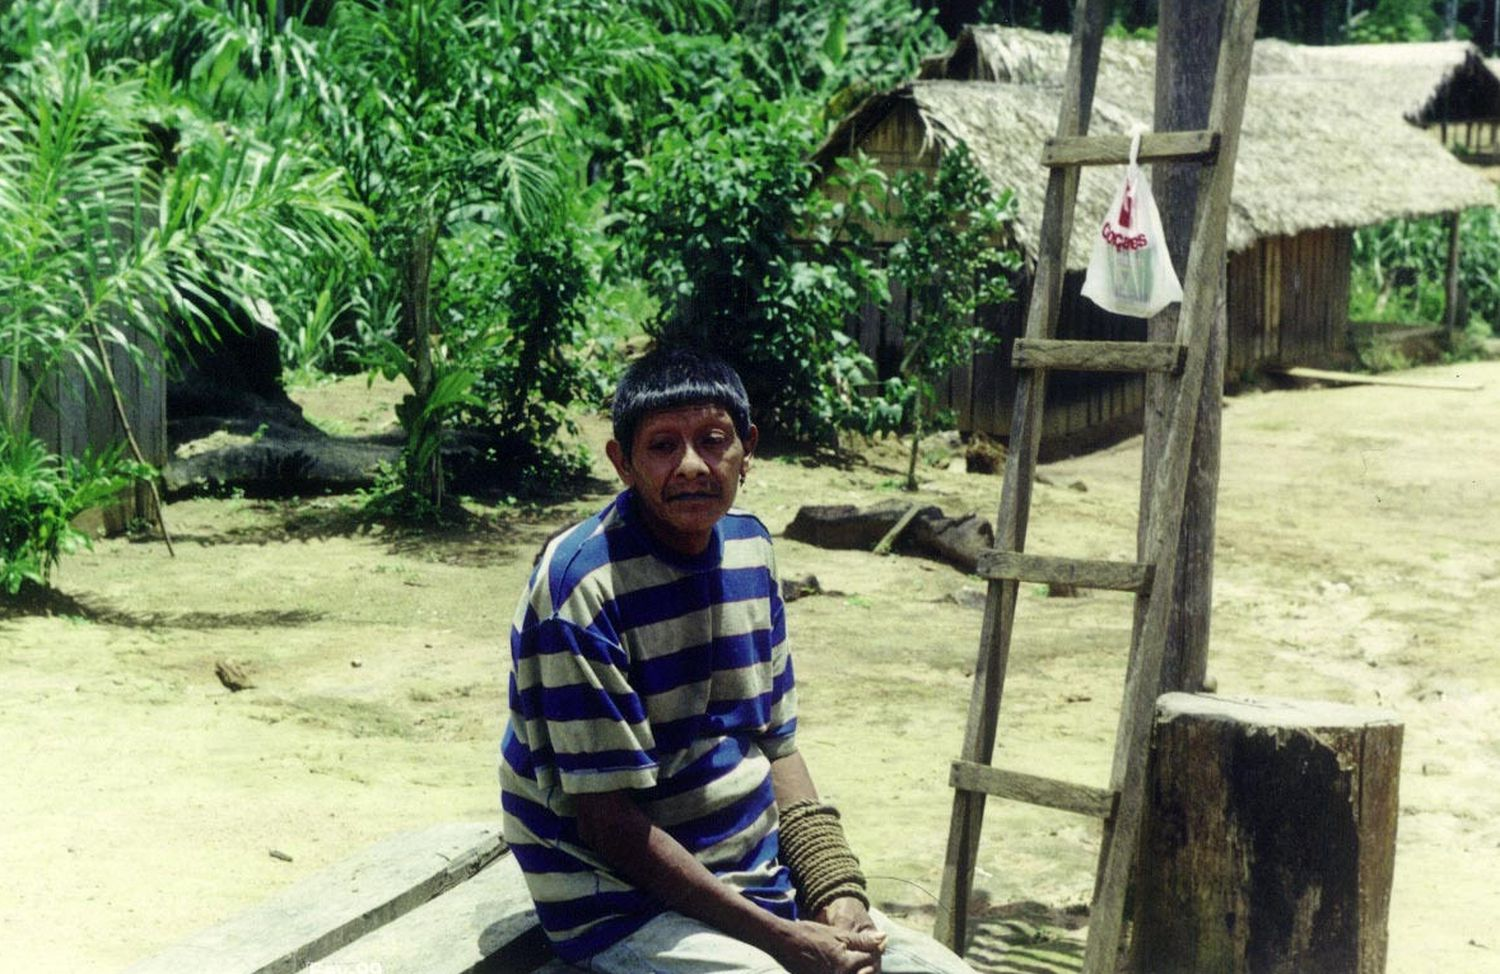 Aruká Juma in a photo taken in 1998 by Edmundo Peggion, when the authorities transferred him and his family to the Uru-eu-wau-wau indigenous land.